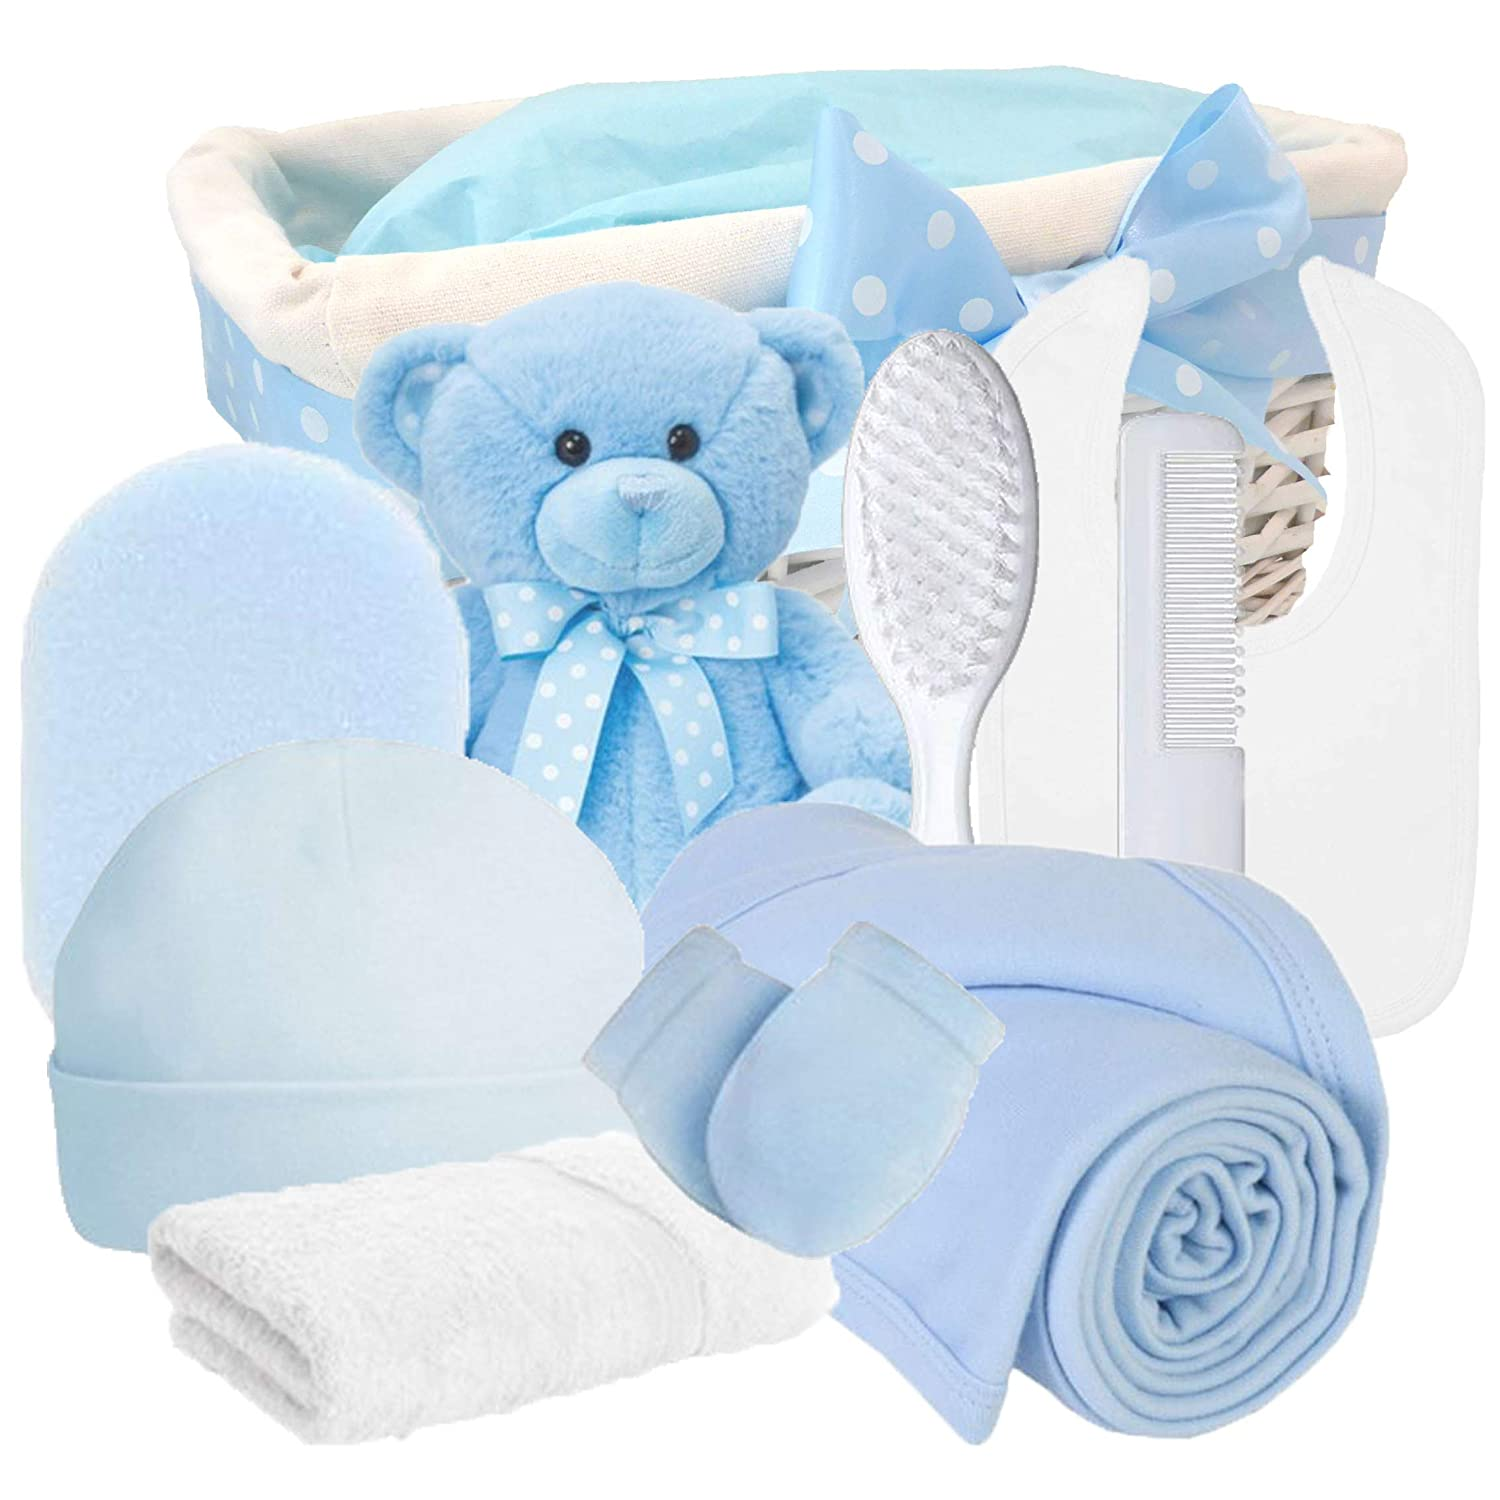 Angel DELUXE Baby Boys Gift Hampers Blue Baby Shower Boy Newborn Hamper Gift for Boys / New Born Baby Boy Gifts Baskets Personalised Sets / Nappy Cake Boy / Unique Mum To Be Maternity Set / FAST DISPATCH Pitter Patter Baby Gifts